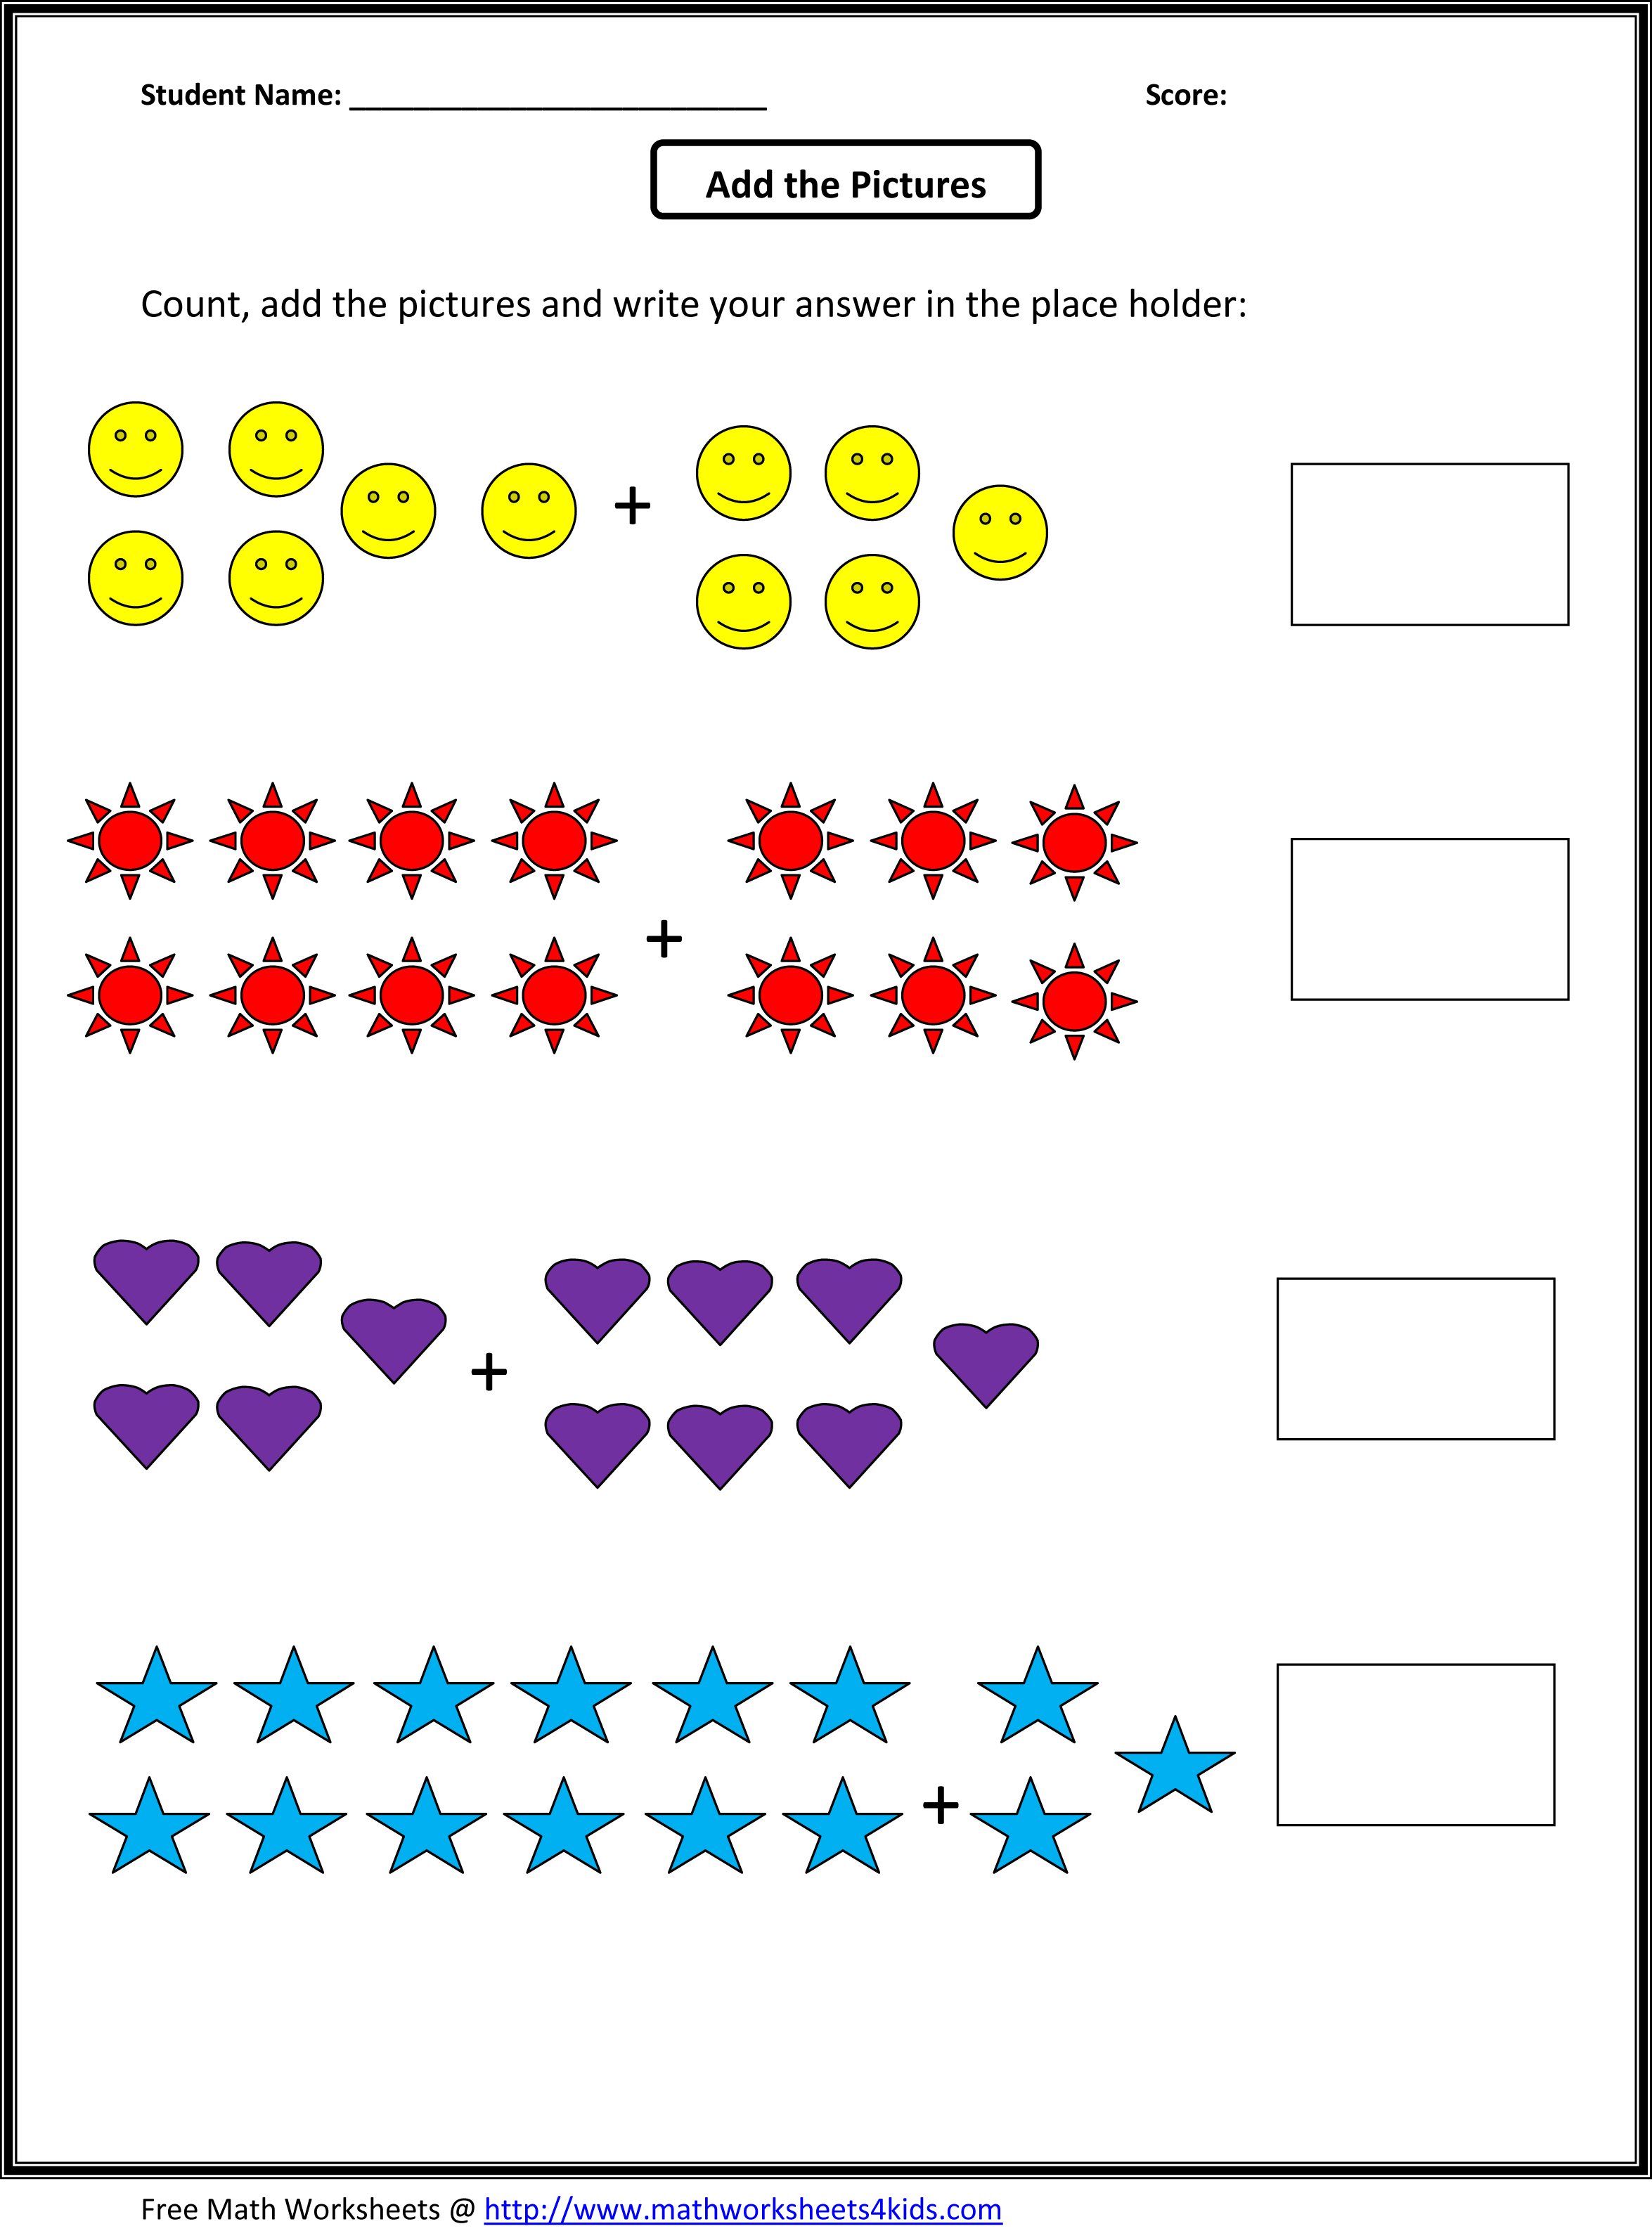 Weirdmailus  Winsome Grade  Maths Worksheet  Reocurent With Exquisite Math Worksheets For St Grade Free  Reocurent With Comely The Legend Of The Indian Paintbrush Worksheets Also Three Digit Subtraction With Regrouping Worksheet In Addition Interpreting Line Plots Worksheets And Sight Word You Worksheet As Well As Math Worksheets Th Grade Algebra Additionally Letter Blends Worksheets From Reocurentcom With Weirdmailus  Exquisite Grade  Maths Worksheet  Reocurent With Comely Math Worksheets For St Grade Free  Reocurent And Winsome The Legend Of The Indian Paintbrush Worksheets Also Three Digit Subtraction With Regrouping Worksheet In Addition Interpreting Line Plots Worksheets From Reocurentcom